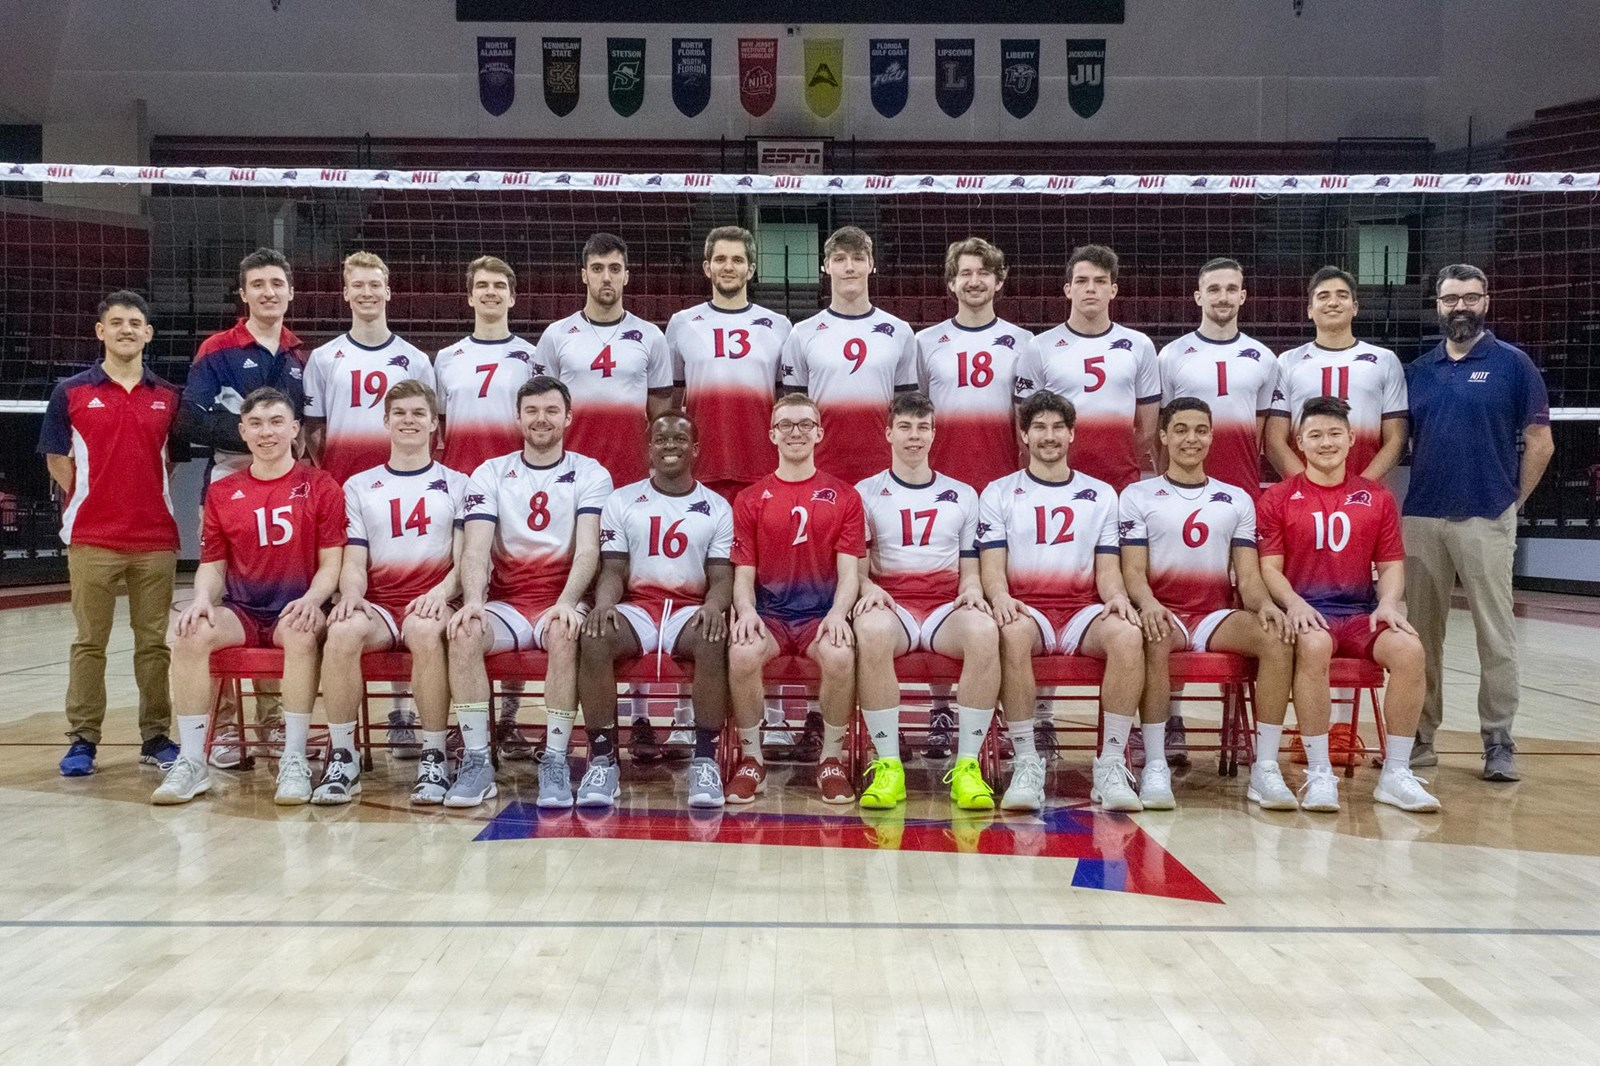 2020 Men S Volleyball Roster New Jersey Institute Of Technology Athletics